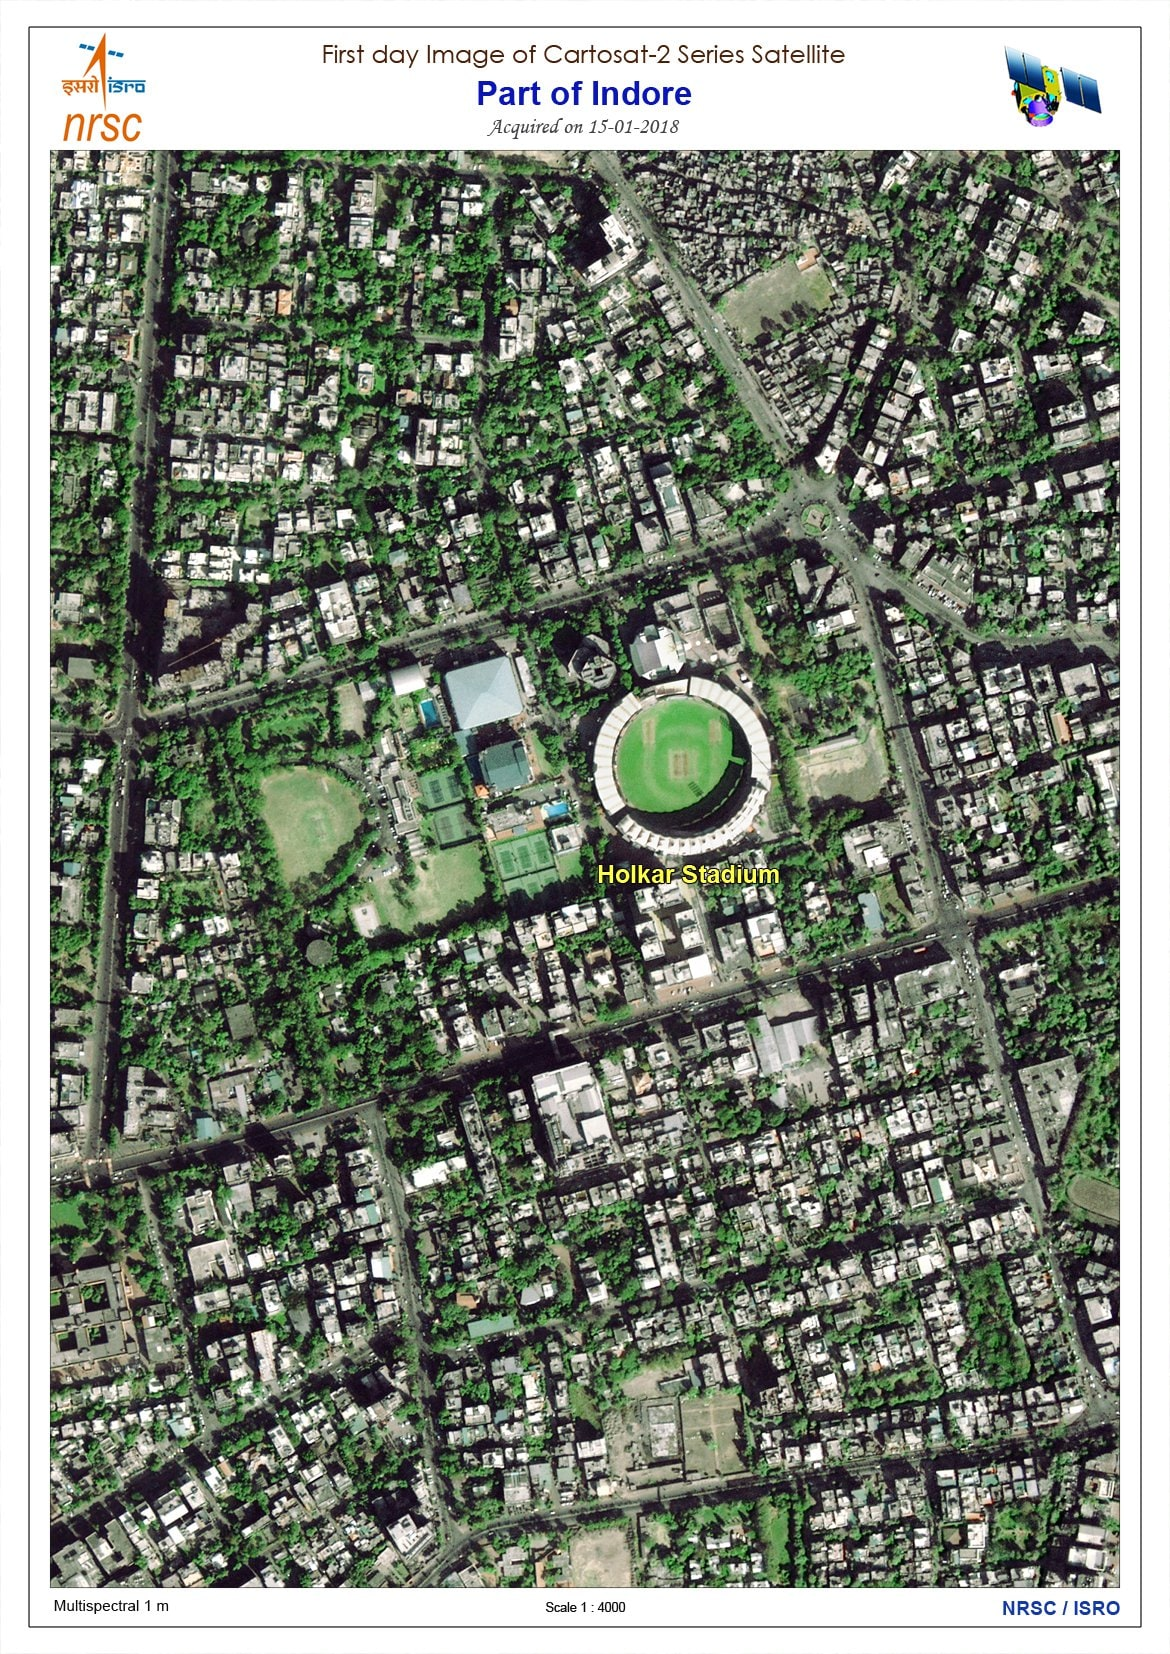 Cartosat-2 satellite first image sent from space. ISRO